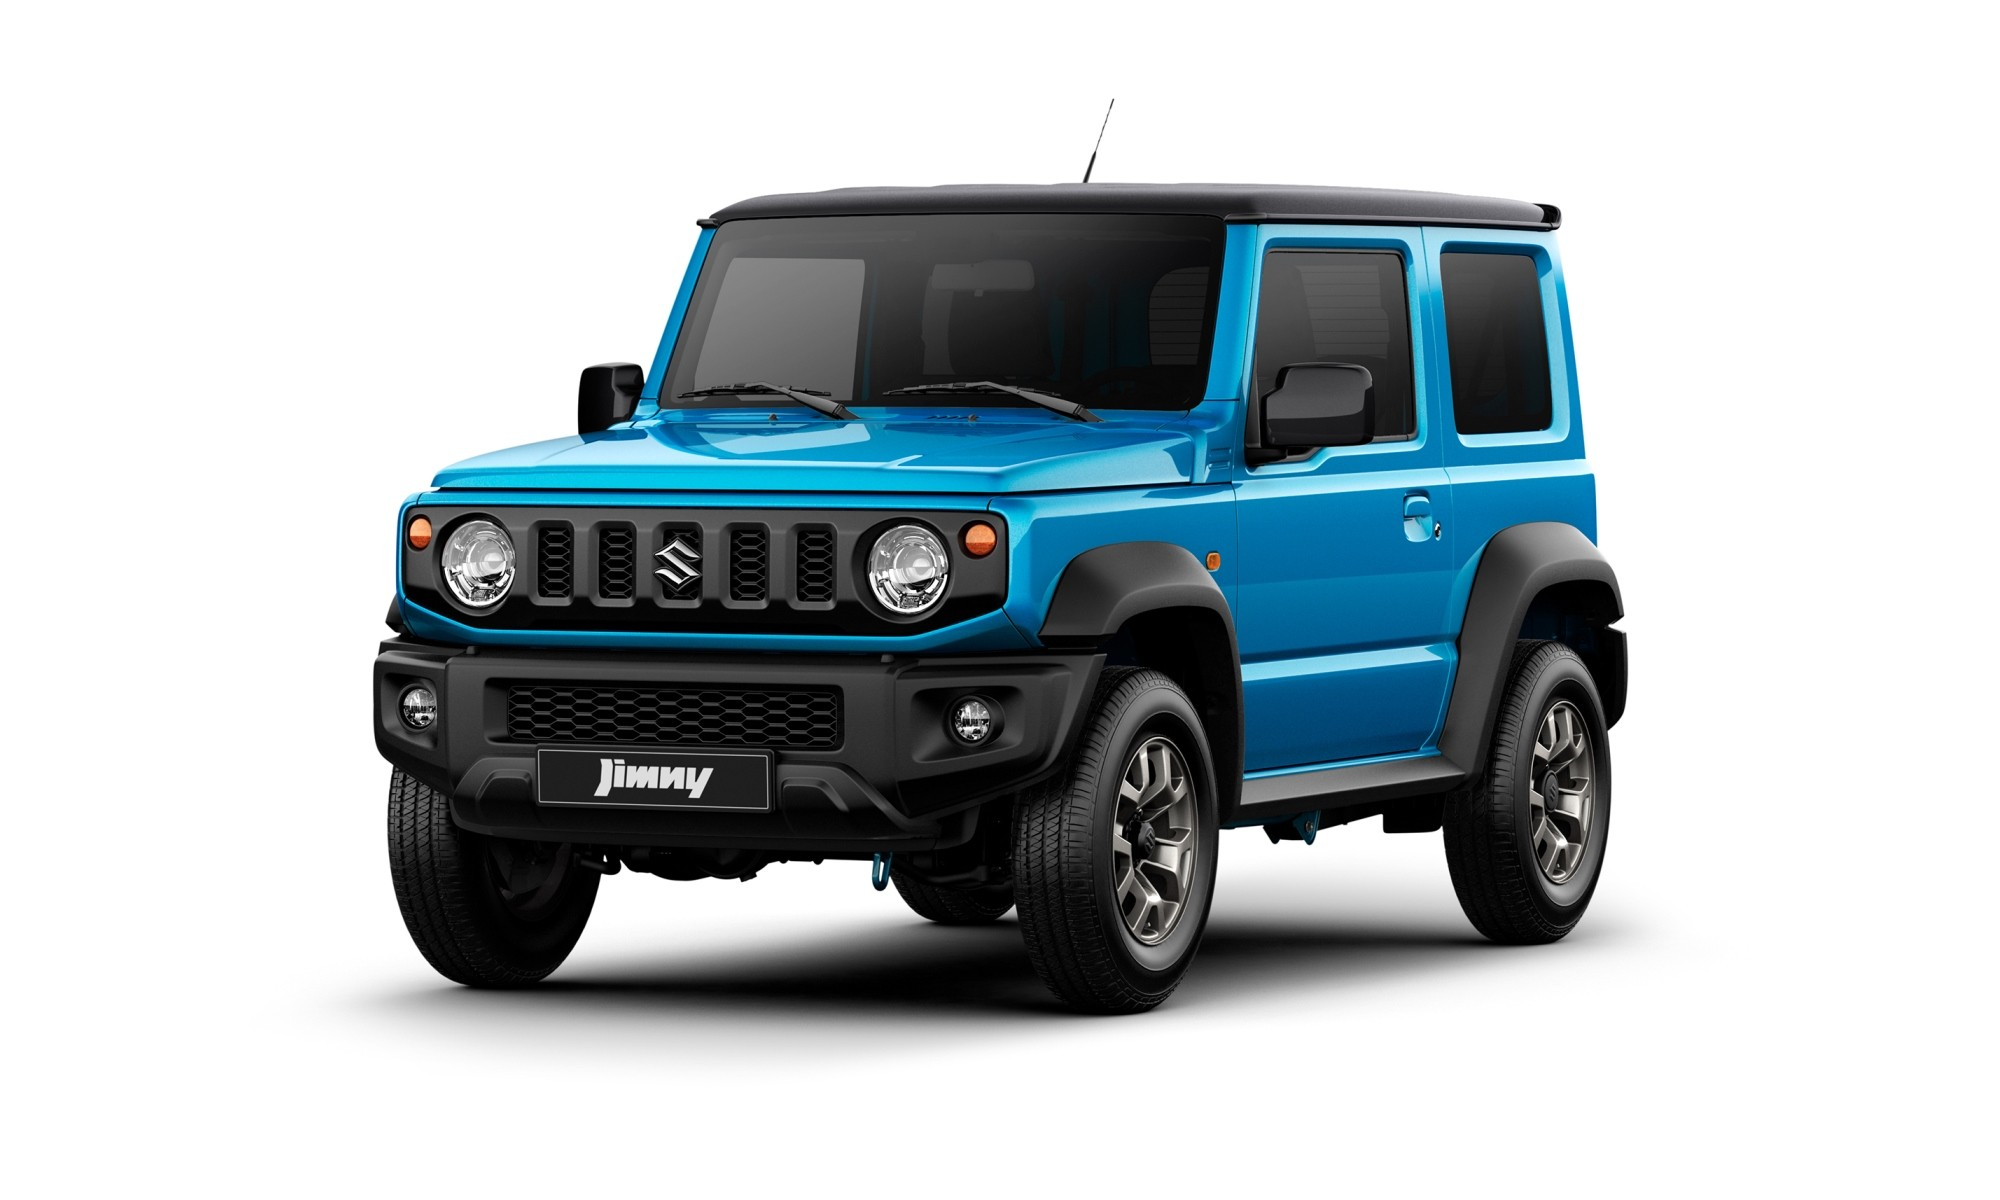 New Suzuki Jimny in a more striking metallic finish